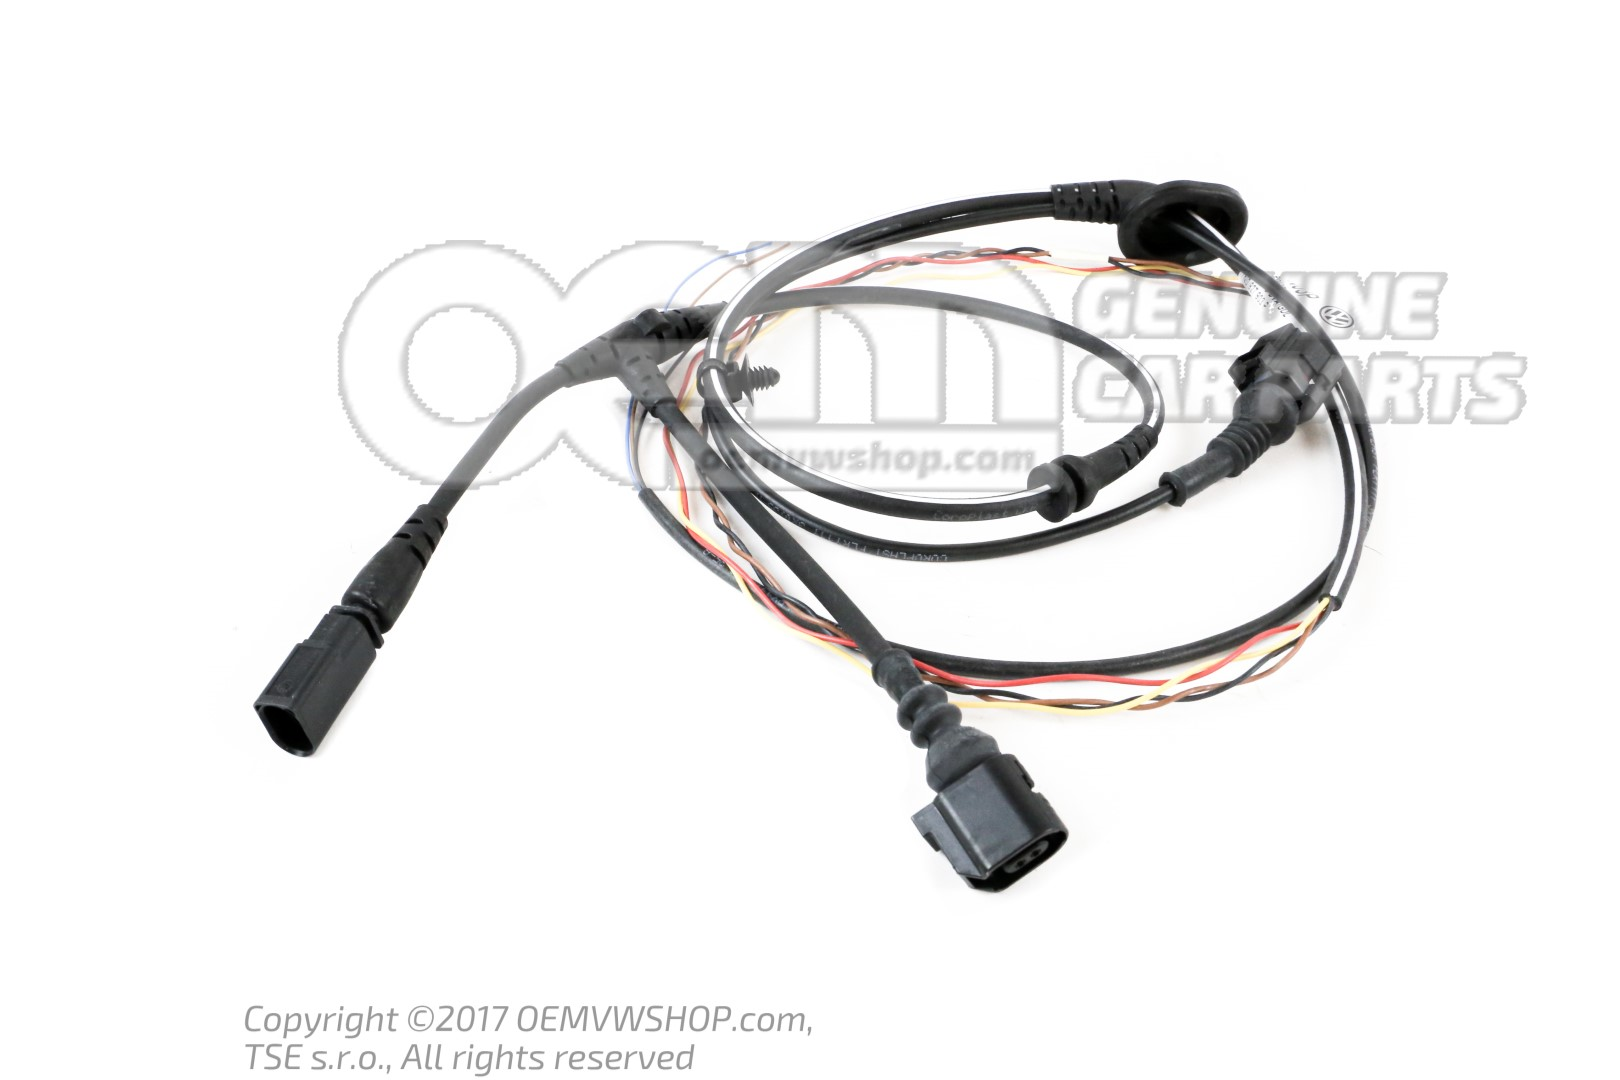 Wiring harness for speed sensor 40N09240903P